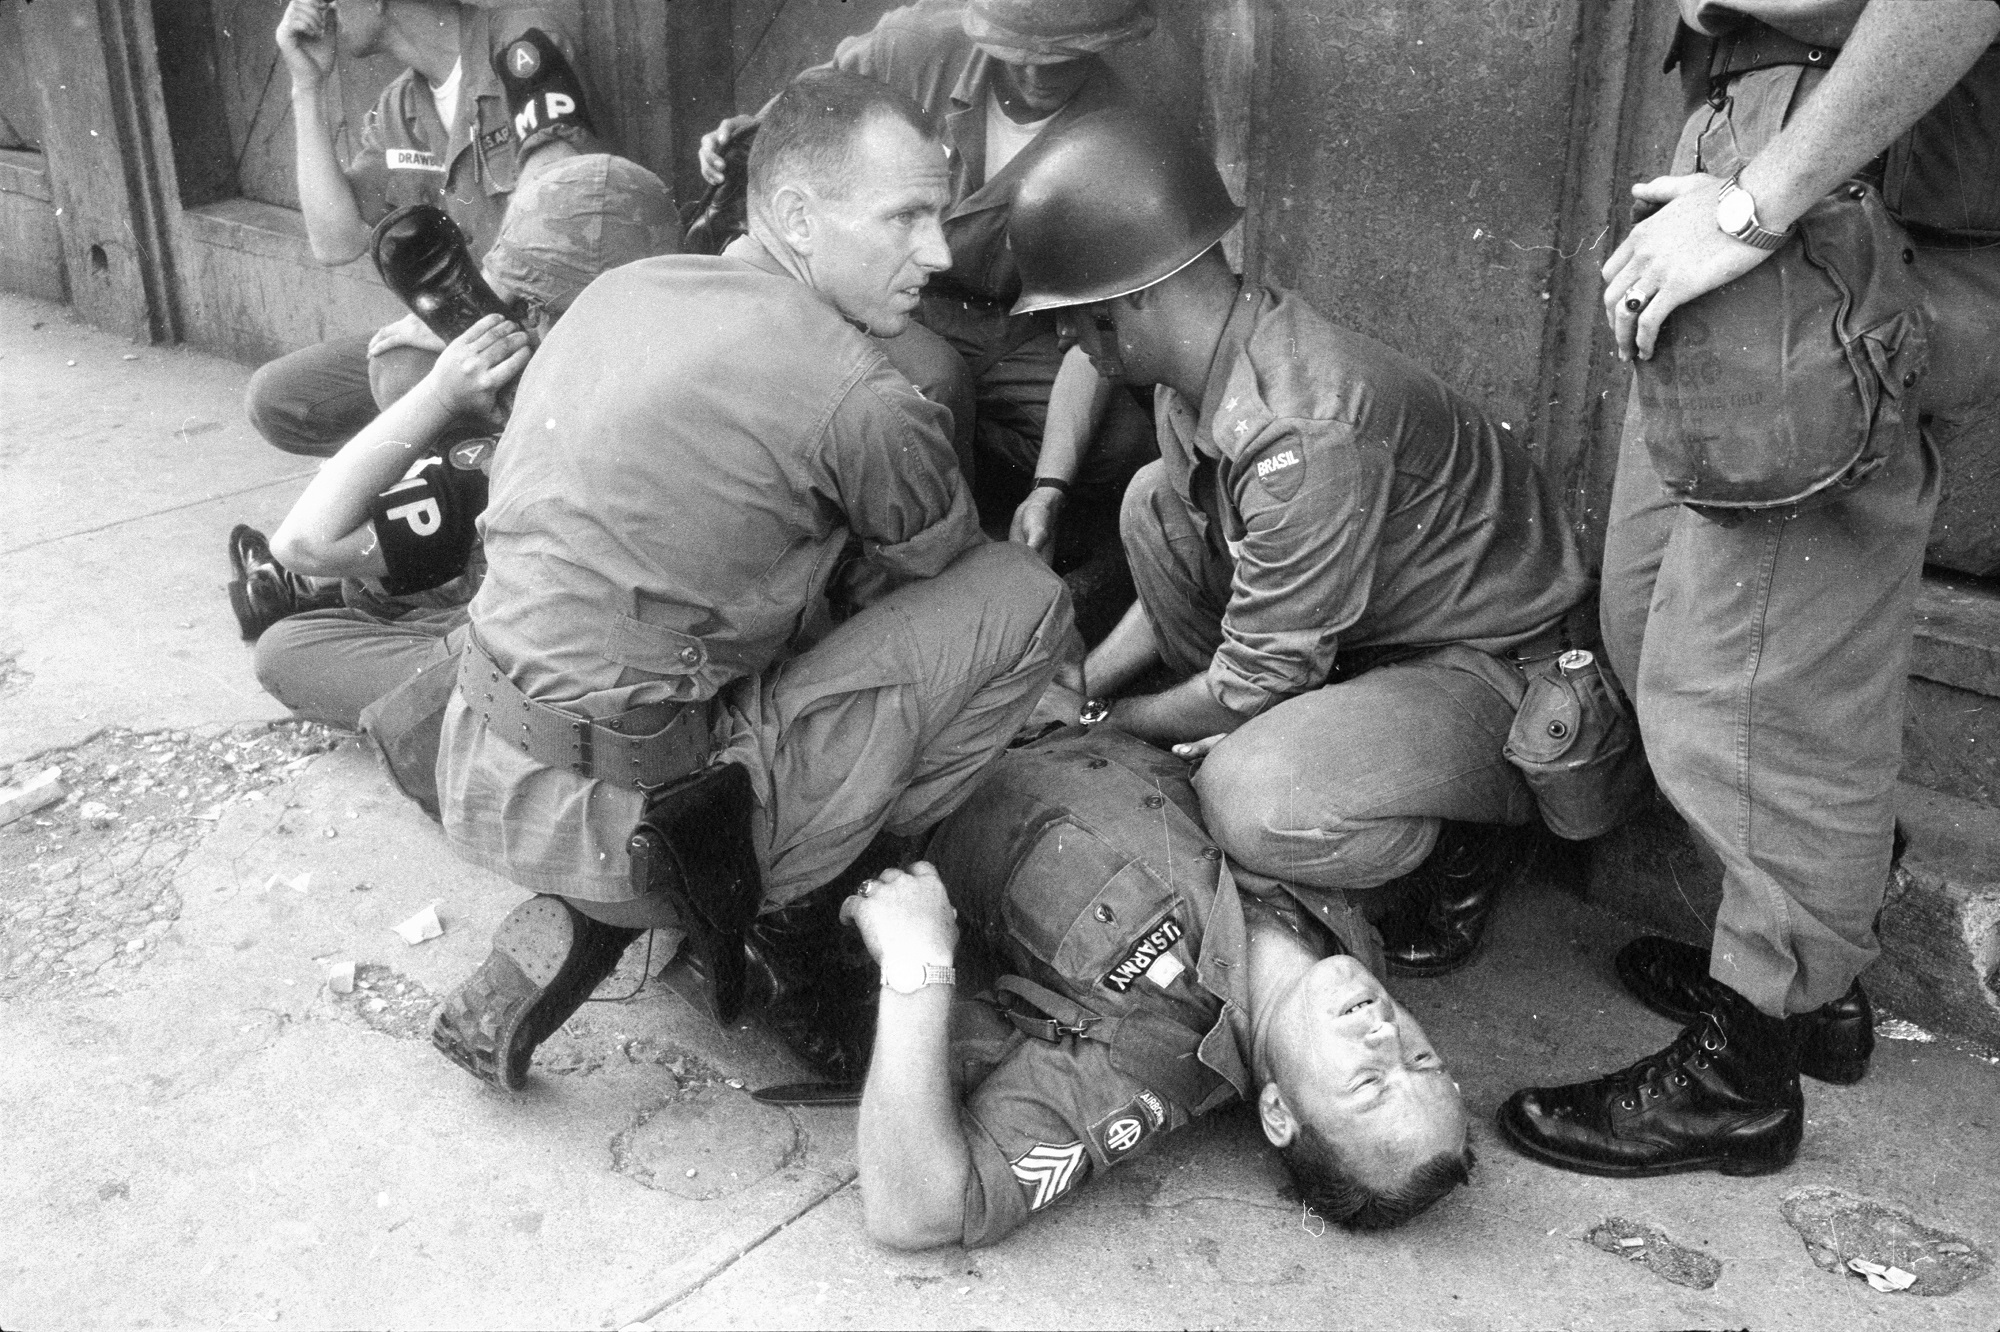 A U.S. paratrooper receives first aid from U.S. military police and a Brazilian officer while he waits for medics after being shot through the thigh by a rebel, Santo Domingo, Dominican Republic, 1965. (Wisconsin Historical Images 115429)